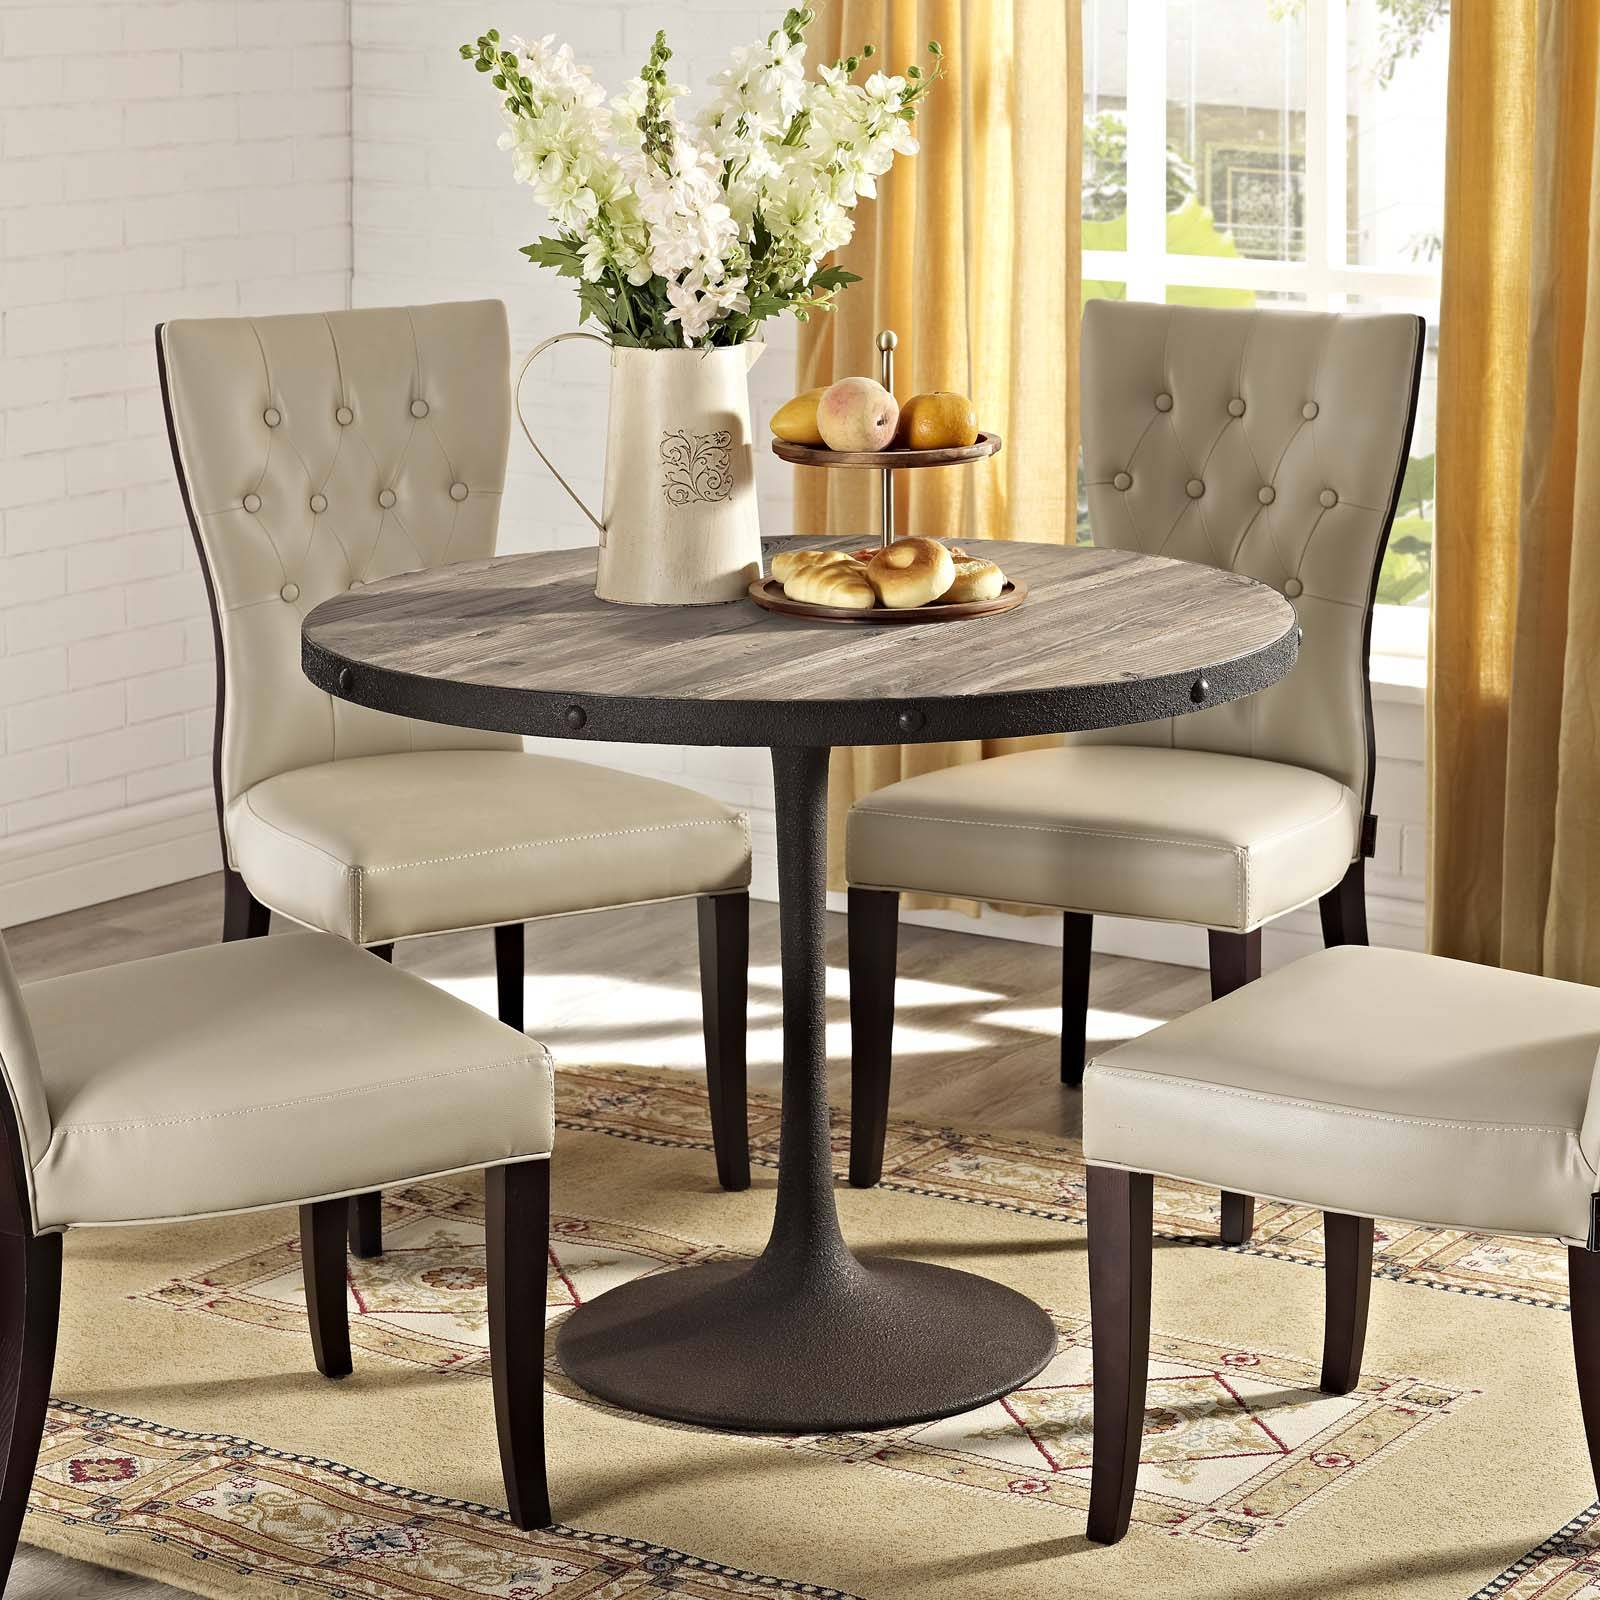 Astounding Top Modern Dining Table Best Farmhouse Tables Within Most Recently Released Chapman Round Marble Dining Tables (View 25 of 25)